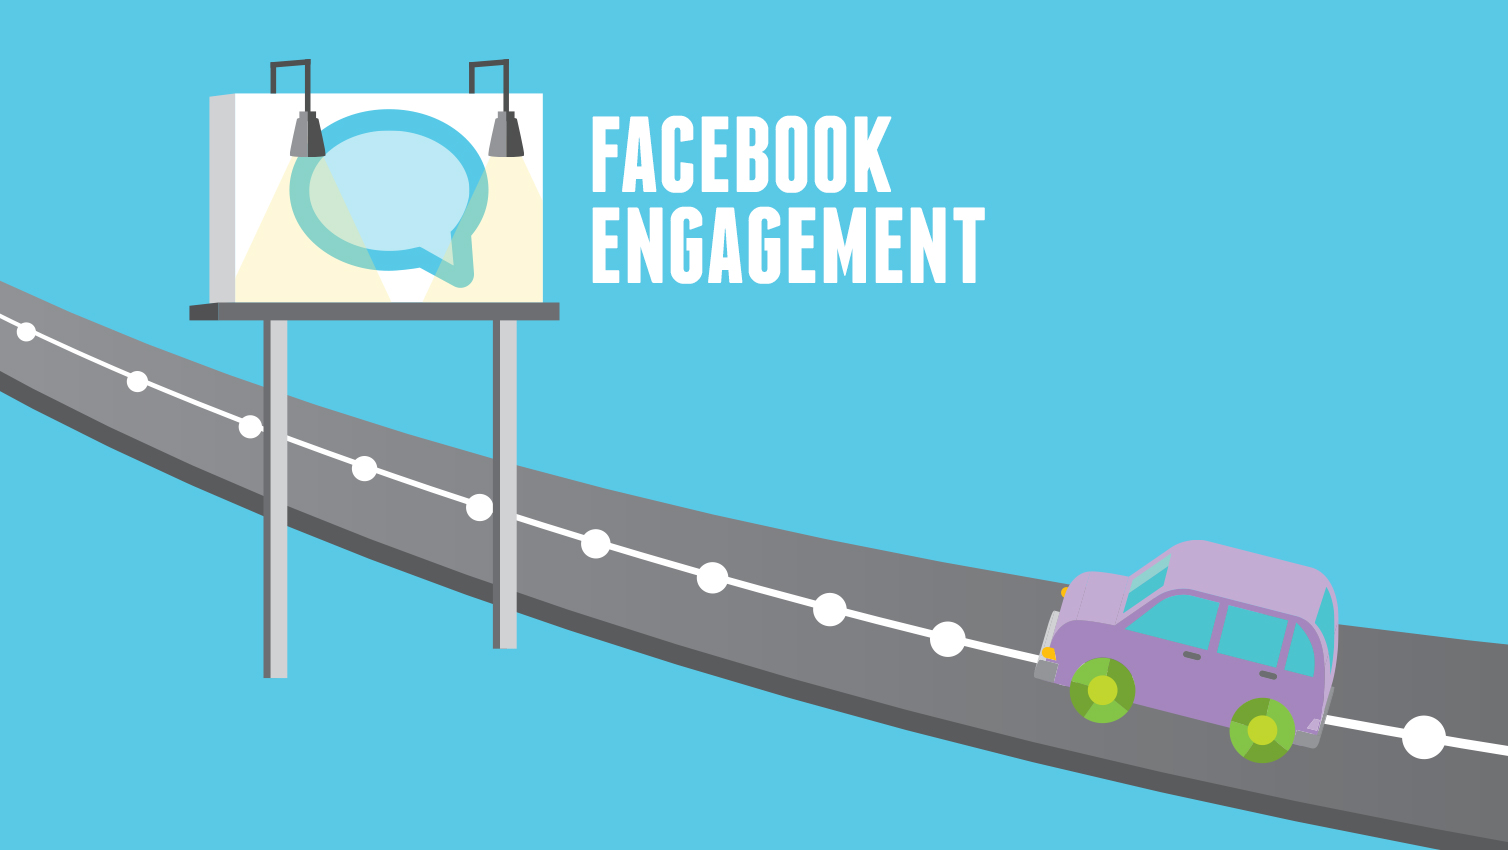 New Research: Facebook Benchmark Data from 2+ Million Posts